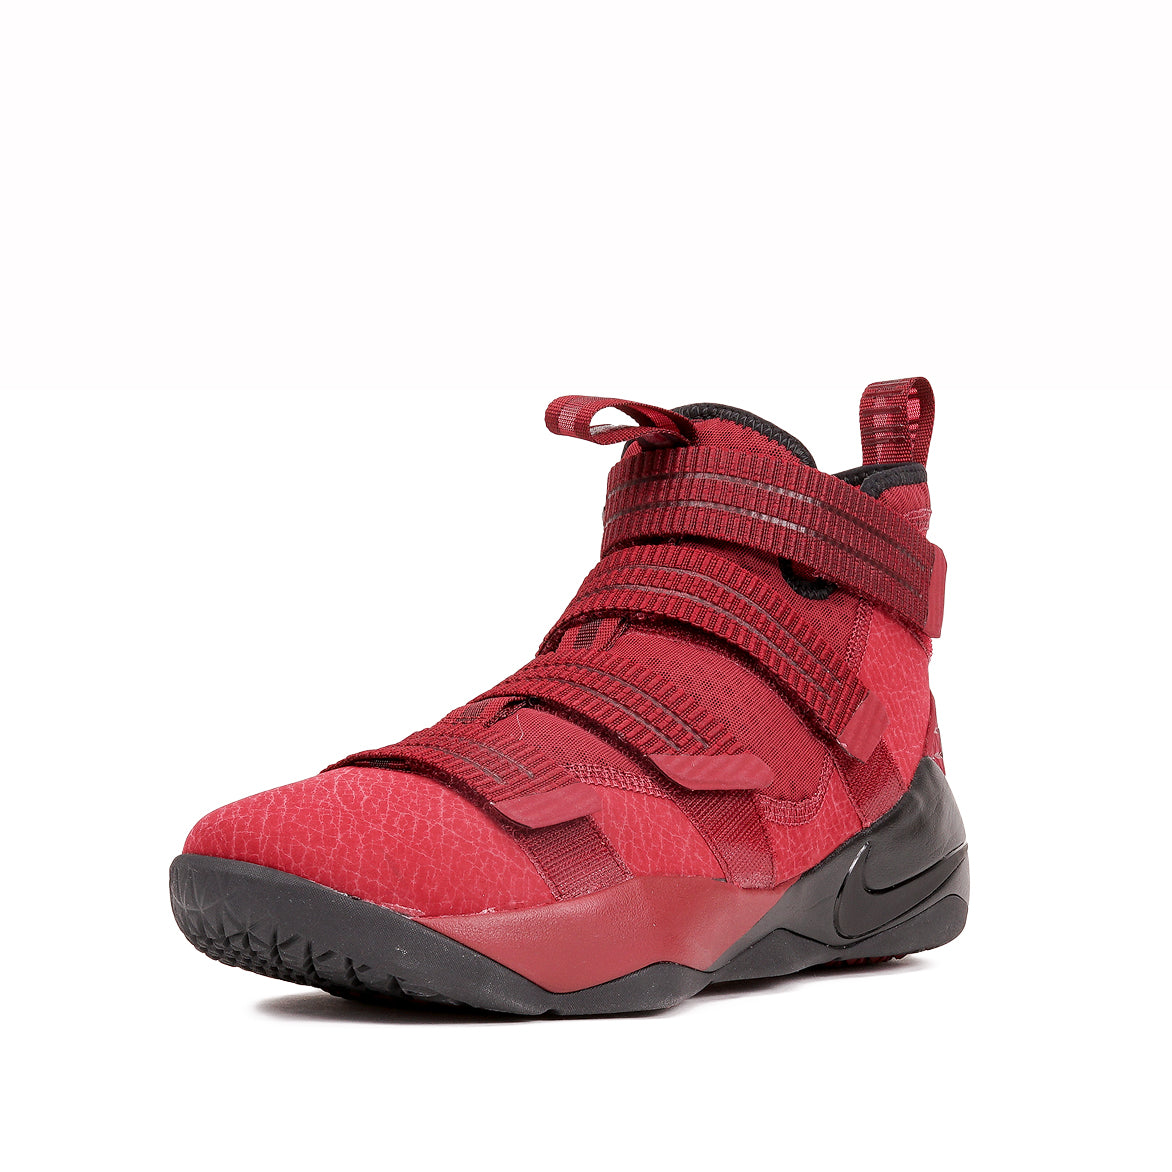 LEBRON SOLDIER XI SFG - TEAM RED